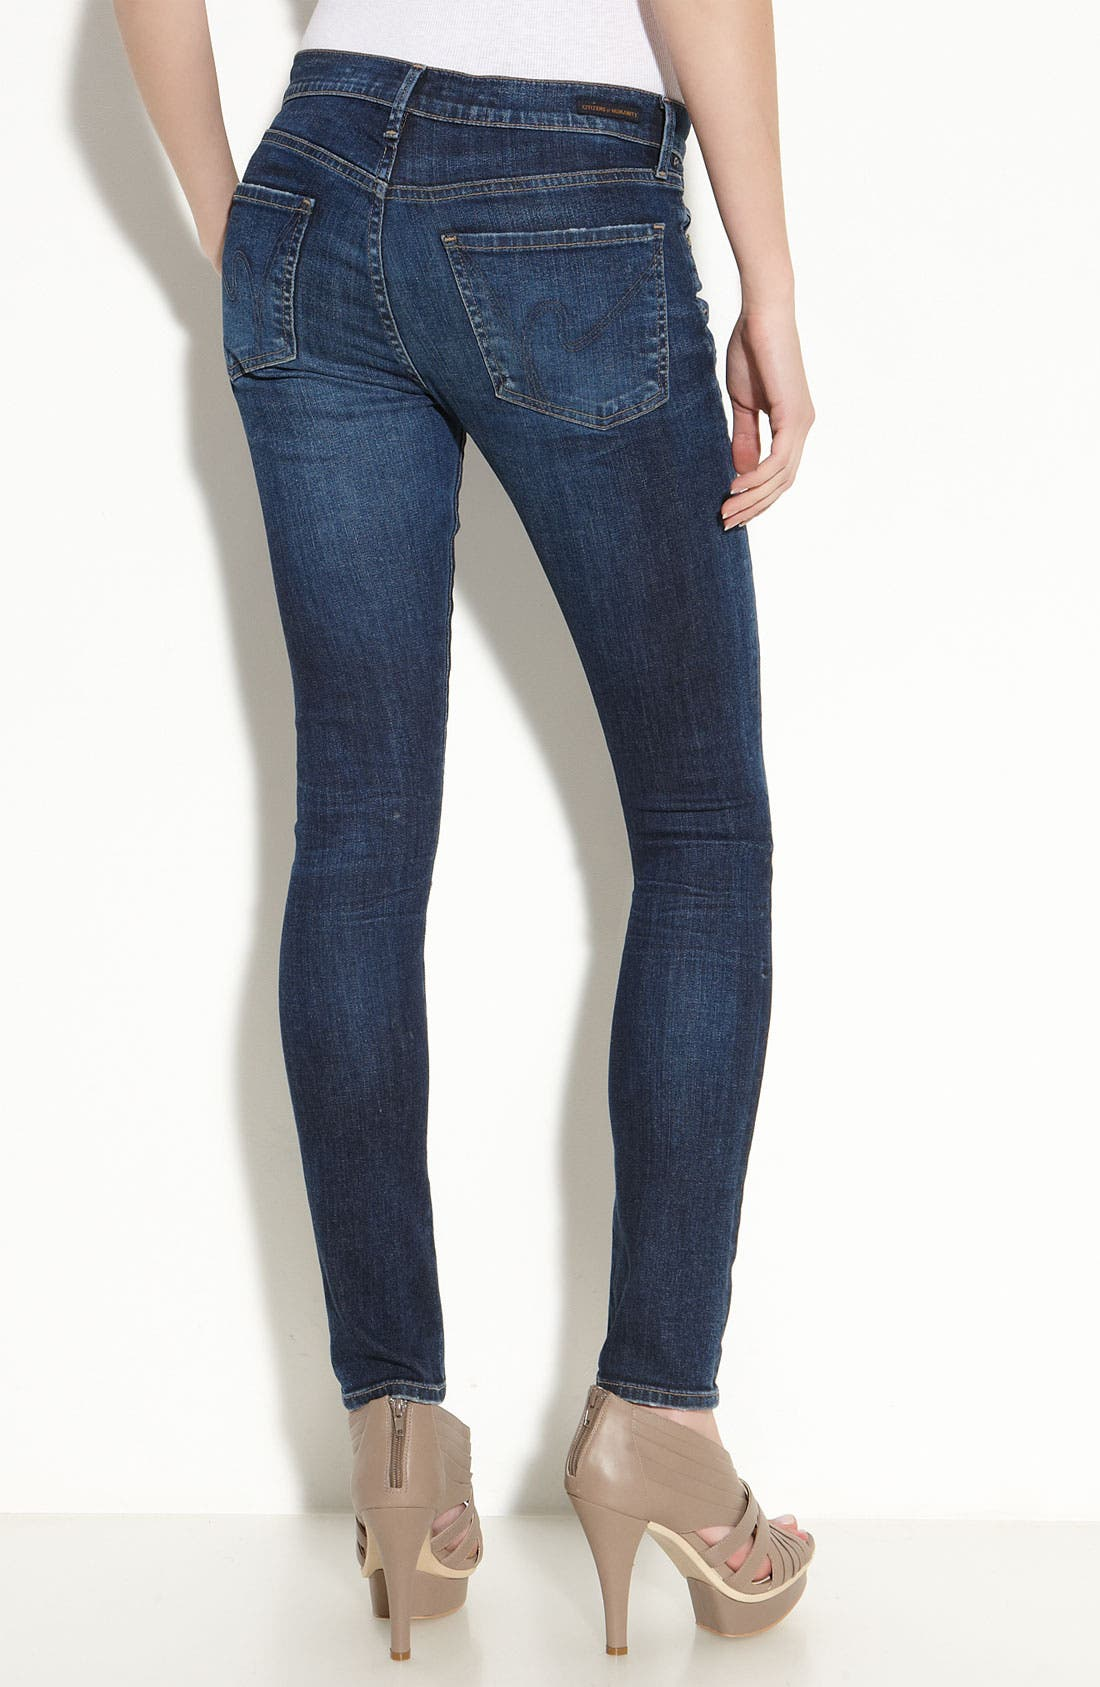 Alternate Image 1 Selected - Citizens of Humanity Skinny Jeans (Spectrum Wash)